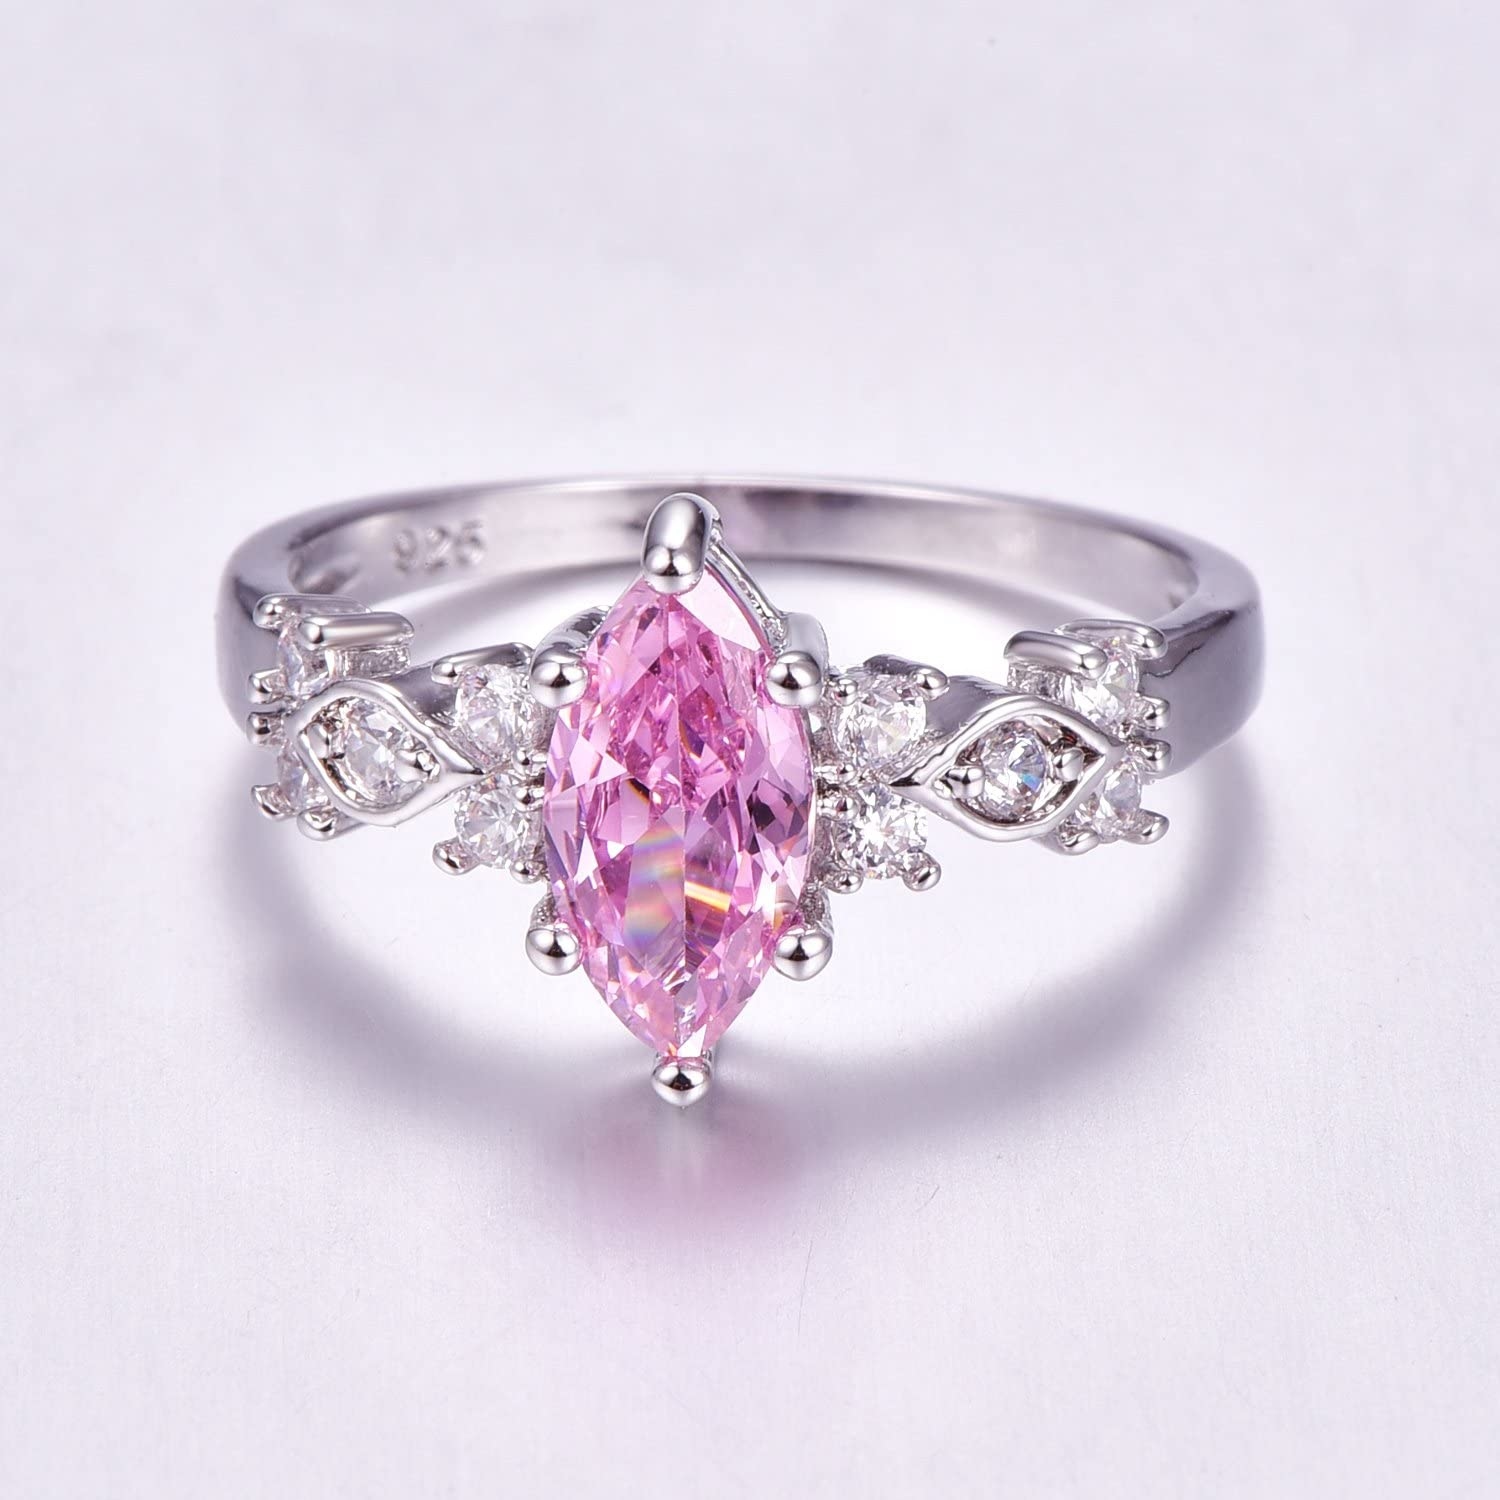 Psiroy 925 Sterling Silver Created Pink Topaz Filled Marquise Promise Ring for Her